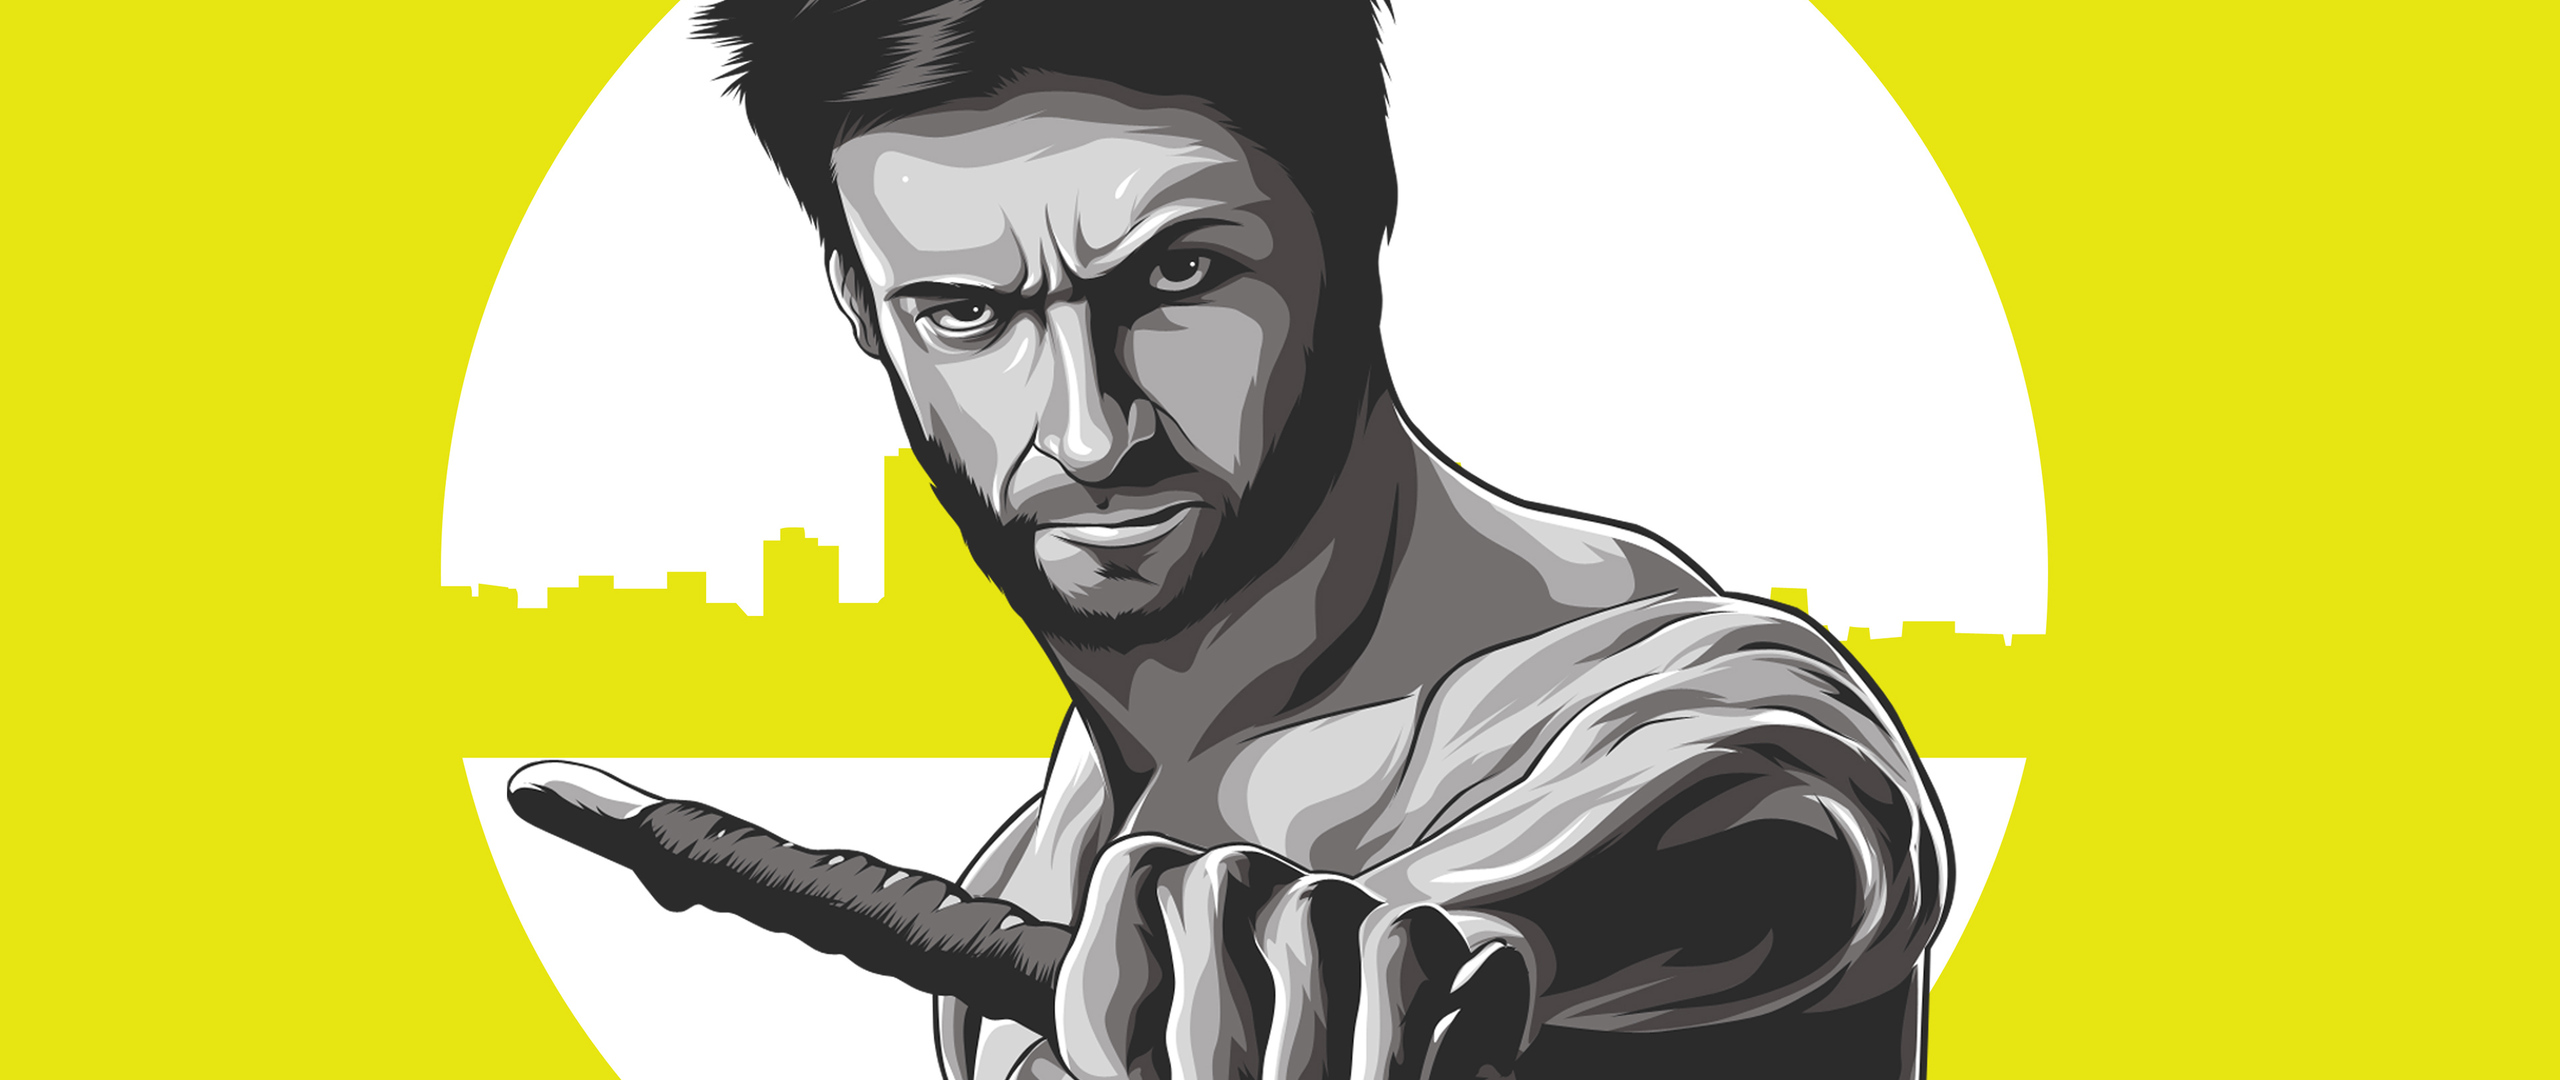 wolverine-4k-illustration-3f.jpg